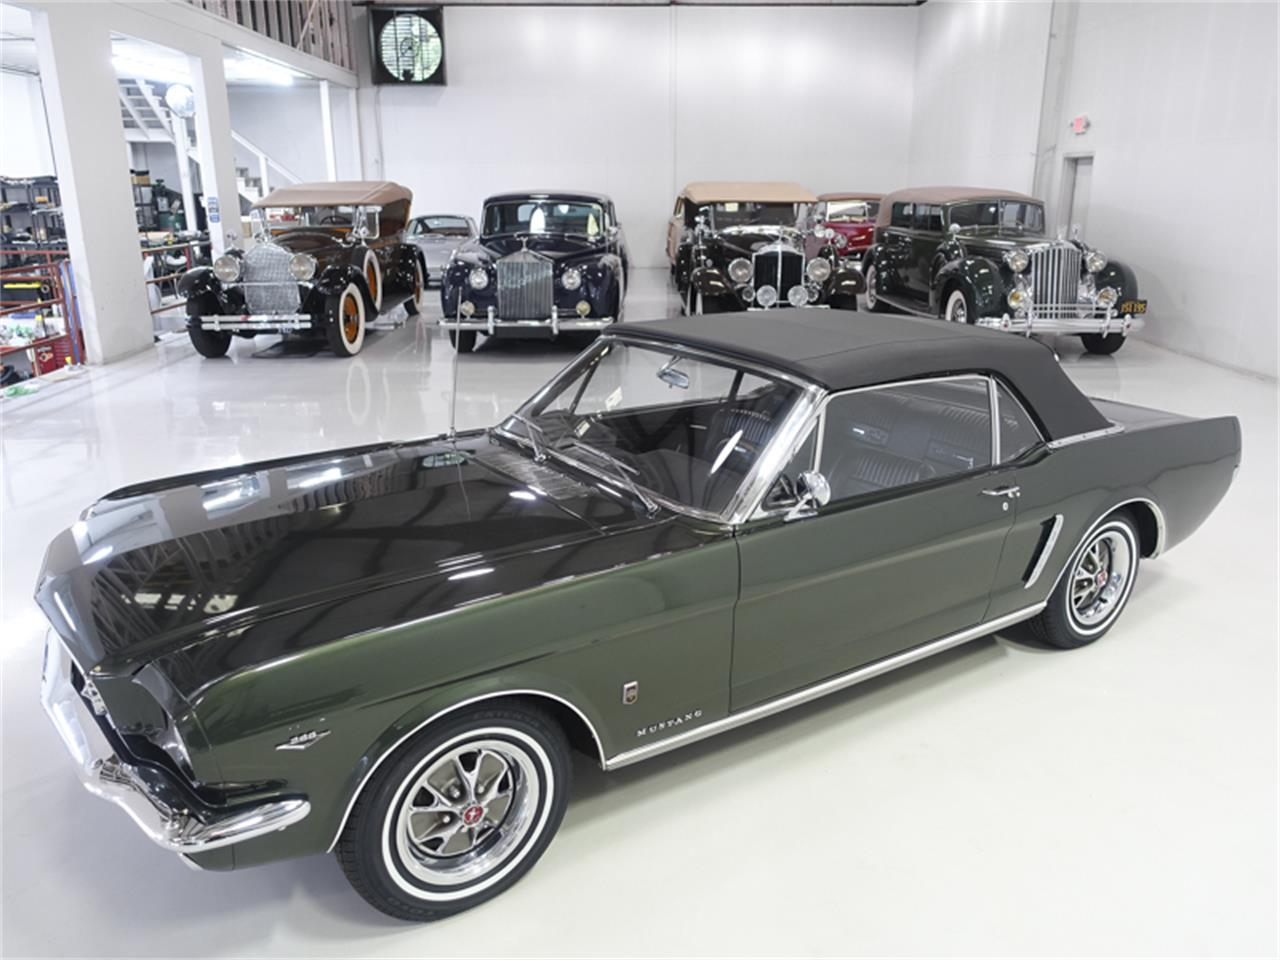 Ford Mustang Pony package 1965 prix tout compris